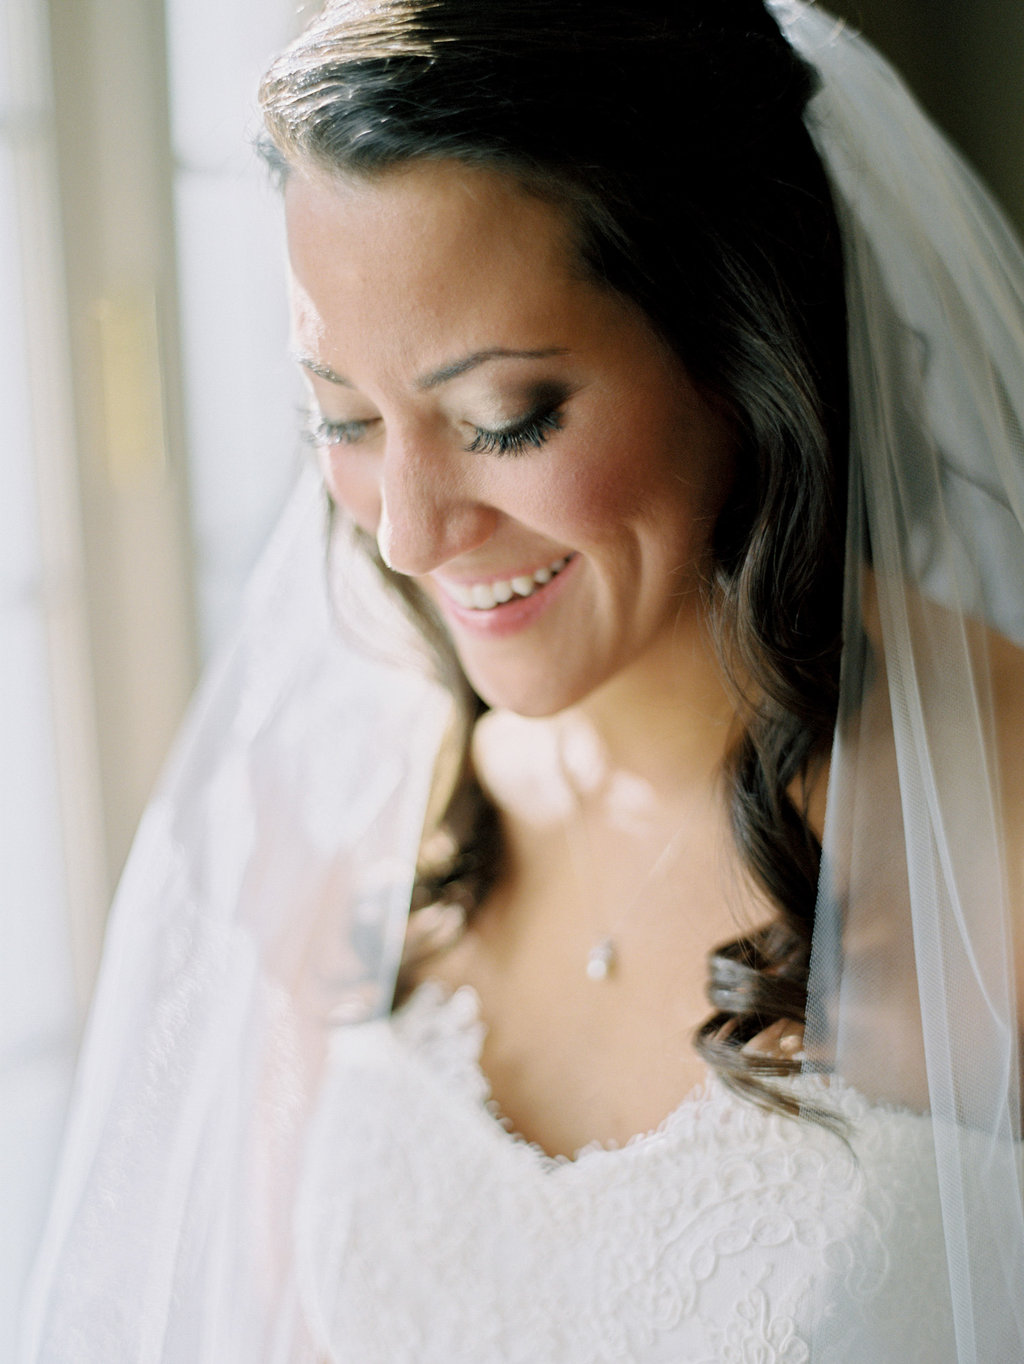 Wedding Planning | New Orleans Wedding | French Quarter Wedding | Sapphire Events | Ryan Ray Photography | White and Green Wedding | Formal Black Tie Wedding | Monique Lhuillier Dress | Hair and Makeup Inspiration | Long Curls | Smokey eye makeup | Bridal portrait